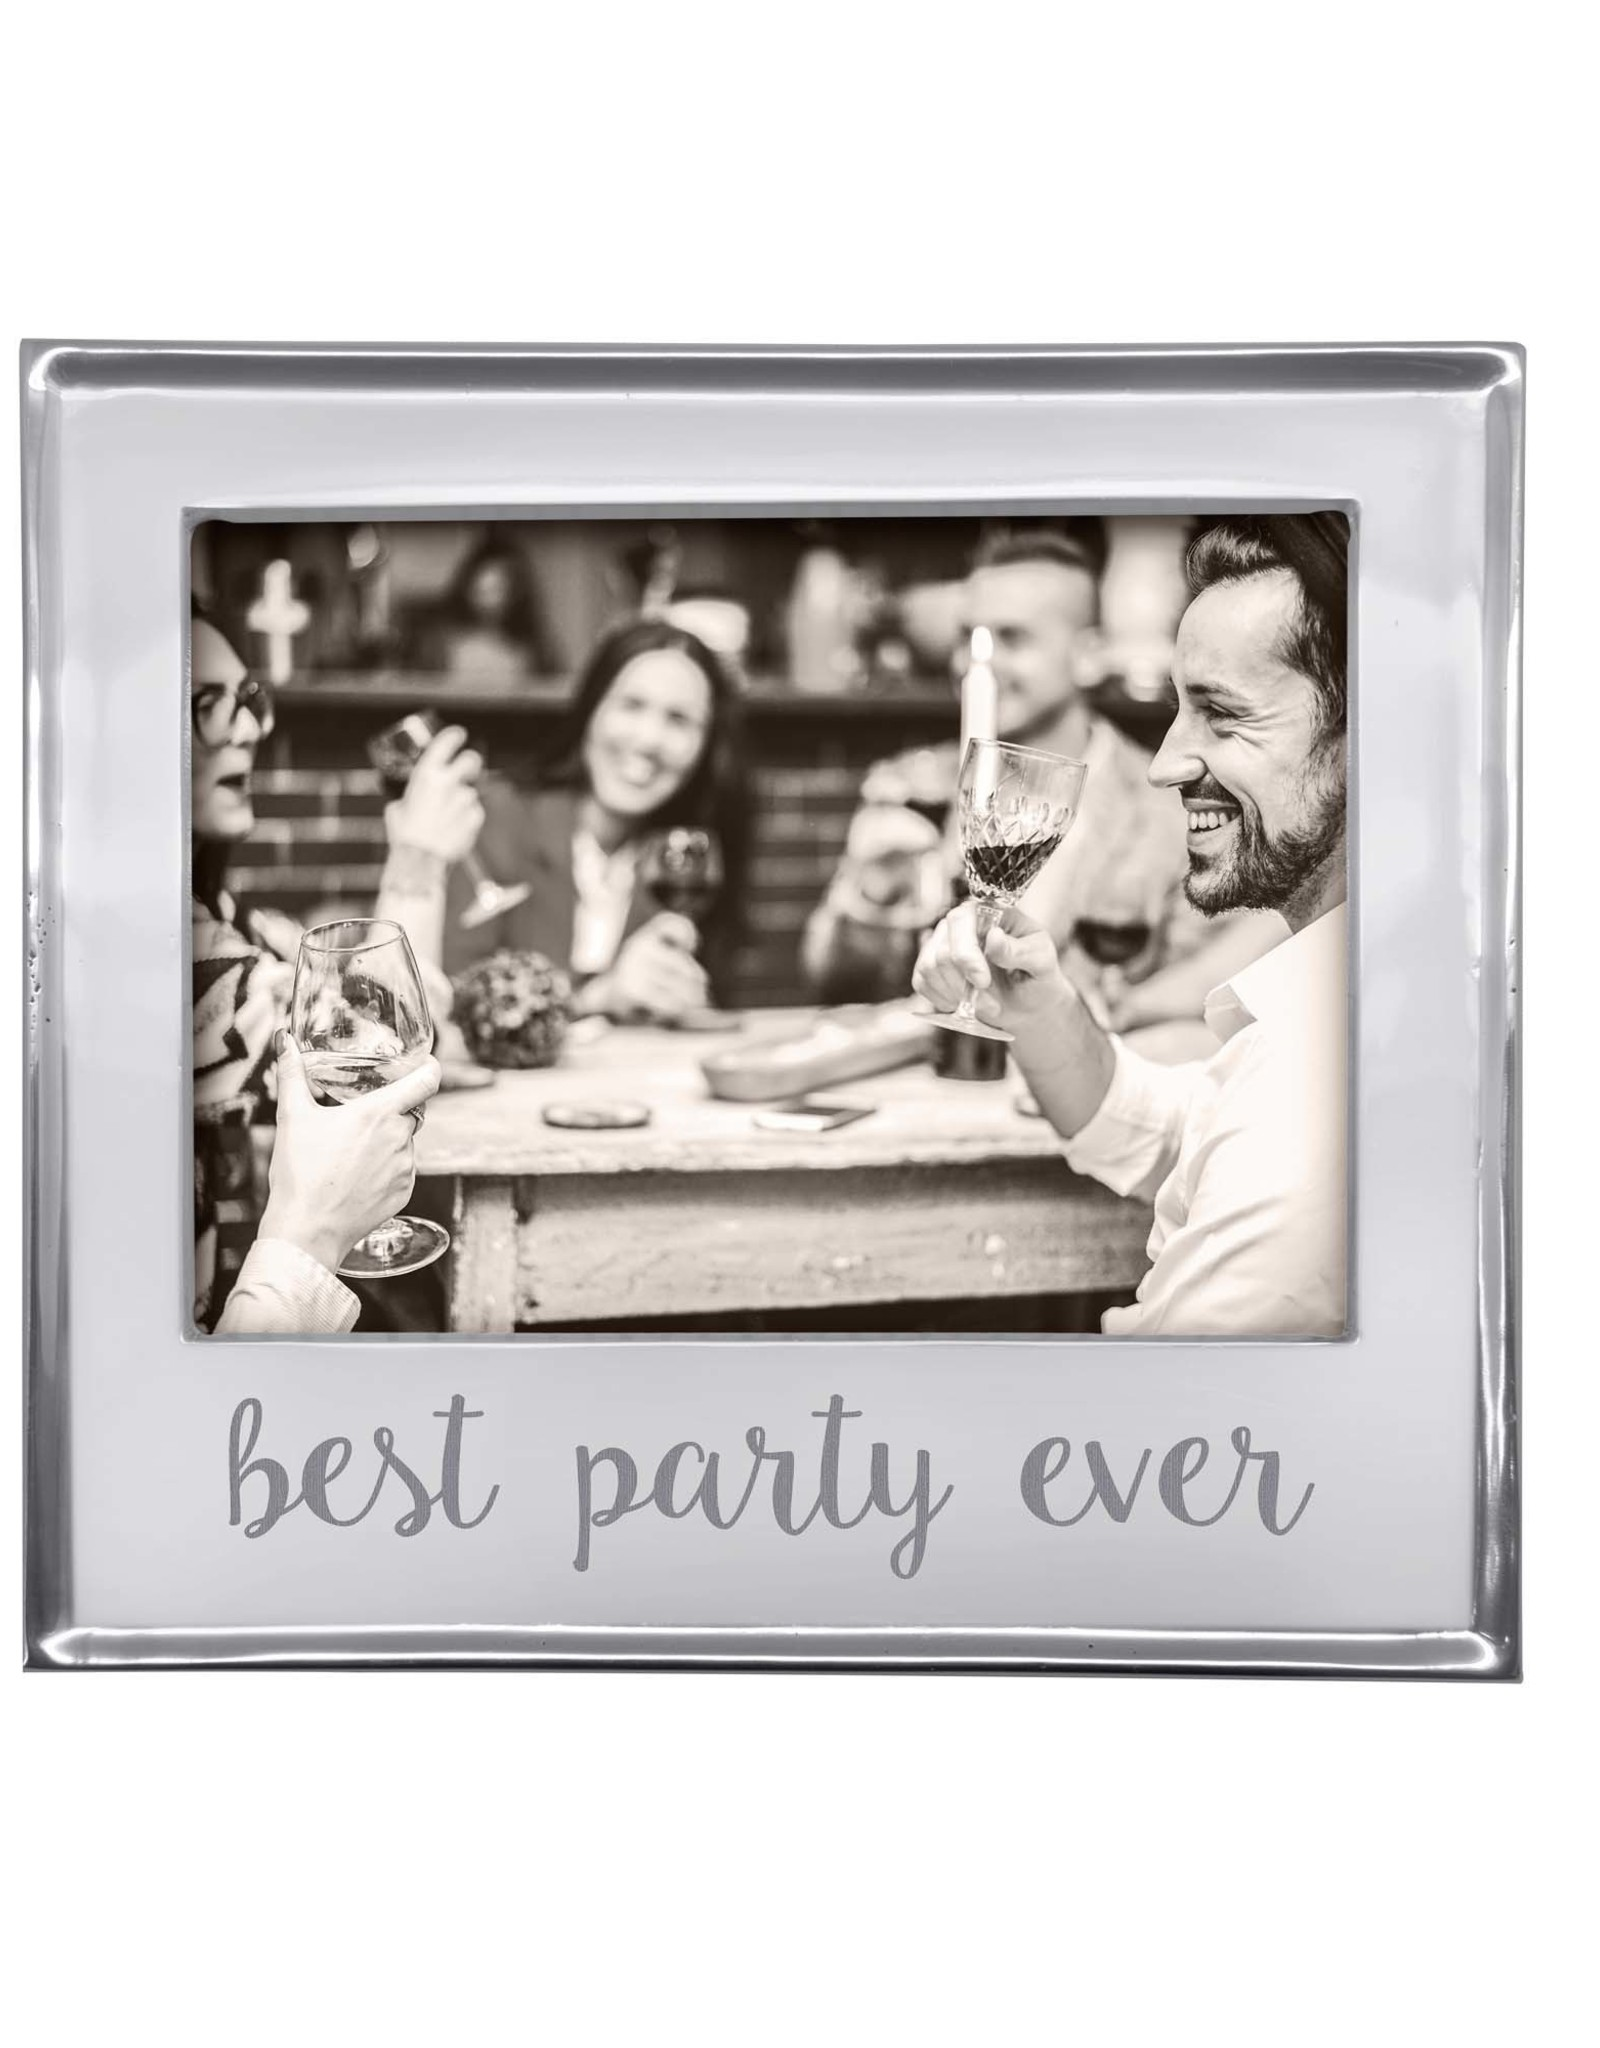 Mariposa Best Party ever Frame 5x7